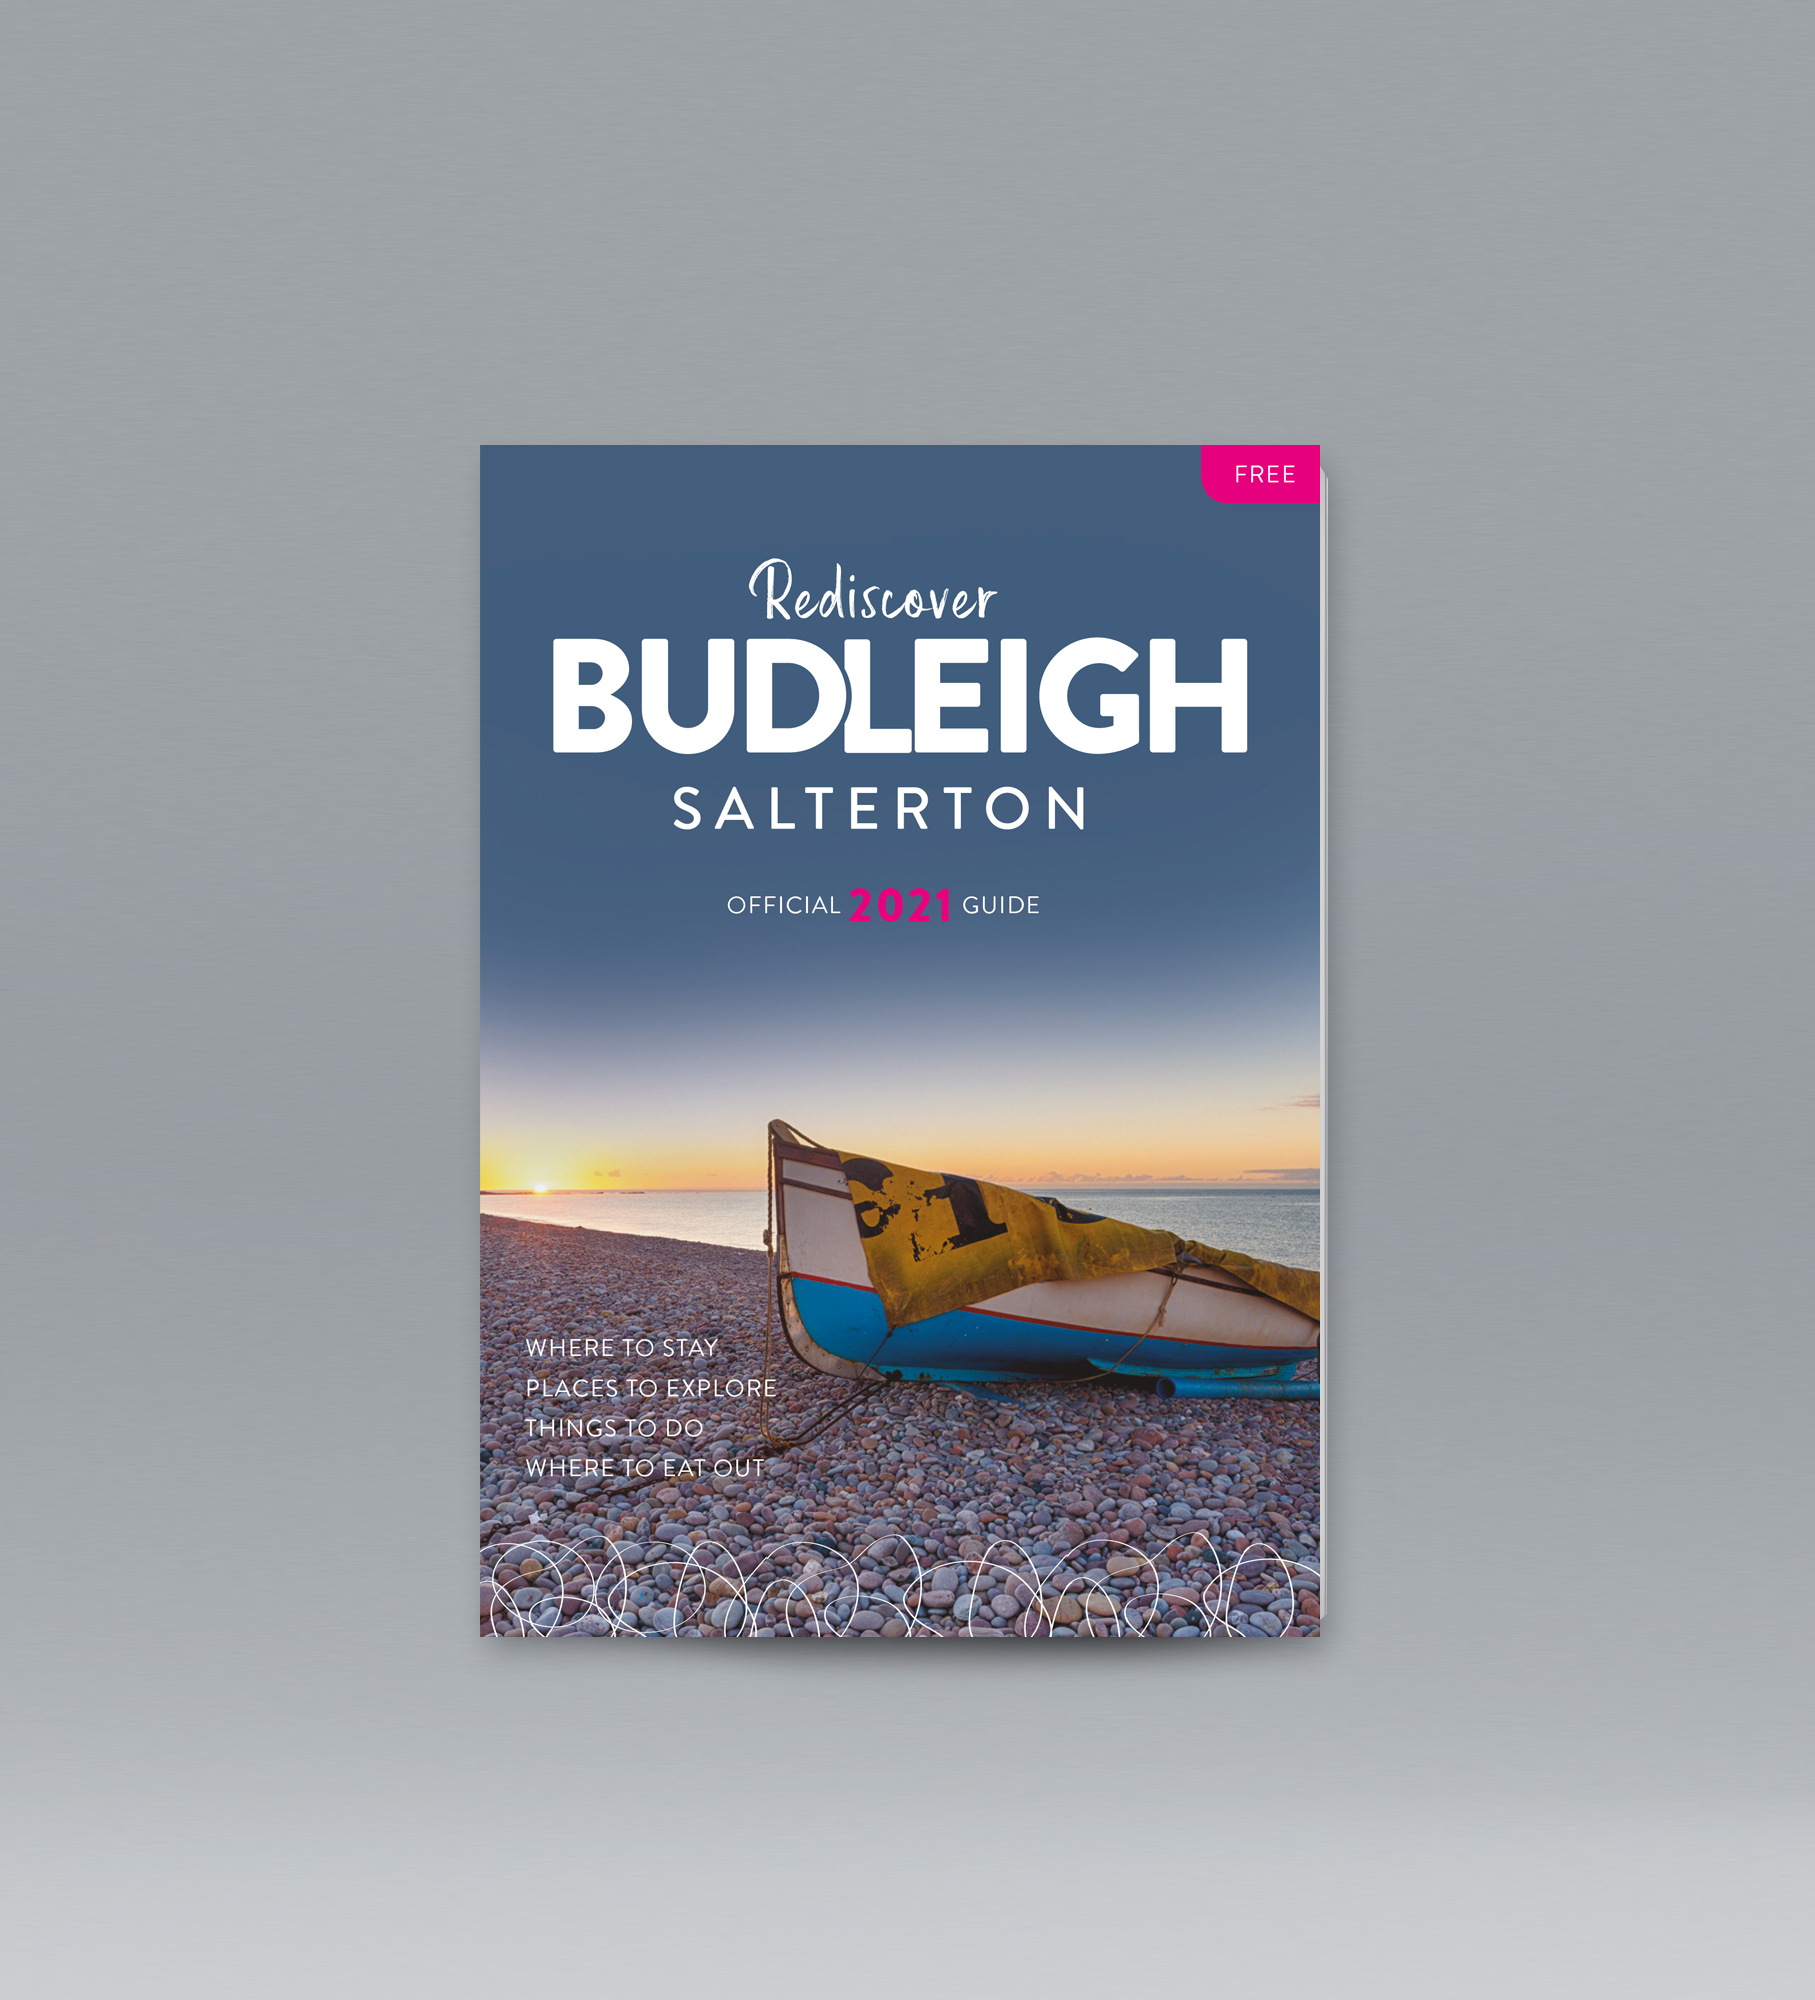 Proposed cover for the Budleigh Guide 2021